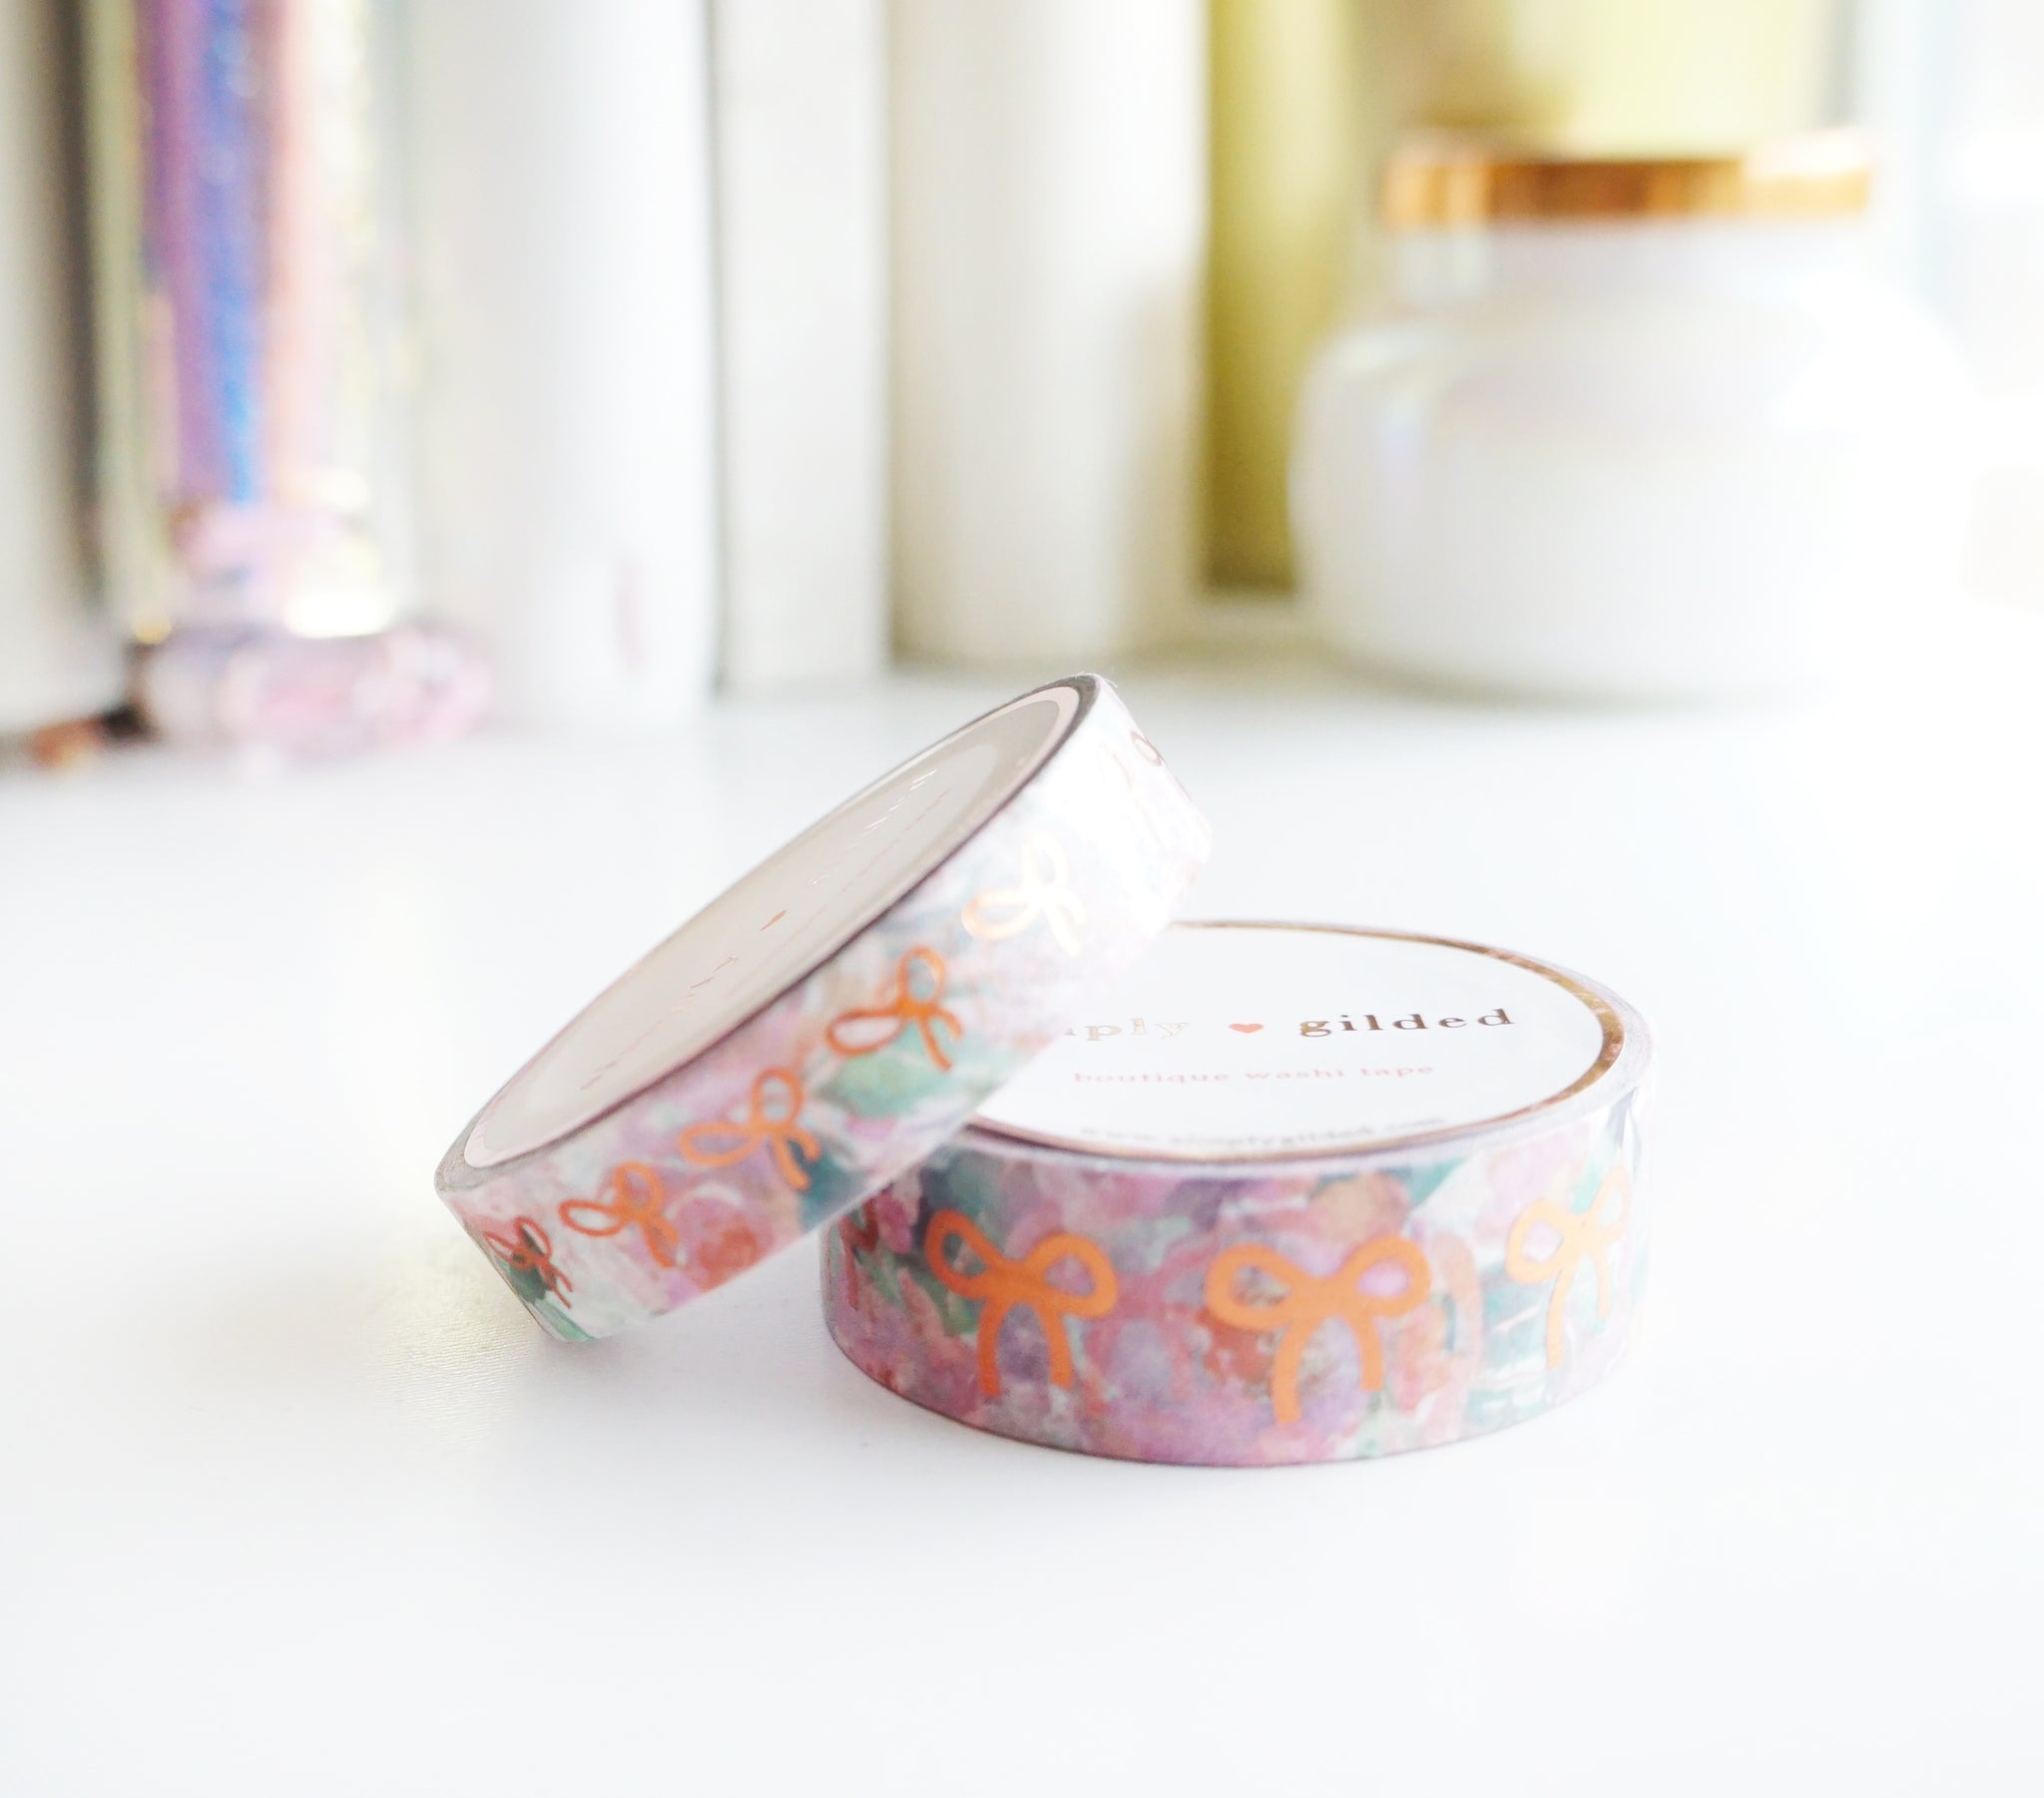 WASHI TAPE 15/10mm BOW set - JUST PEACHY FLORAL + coppery rose gold (Mystery Monday)